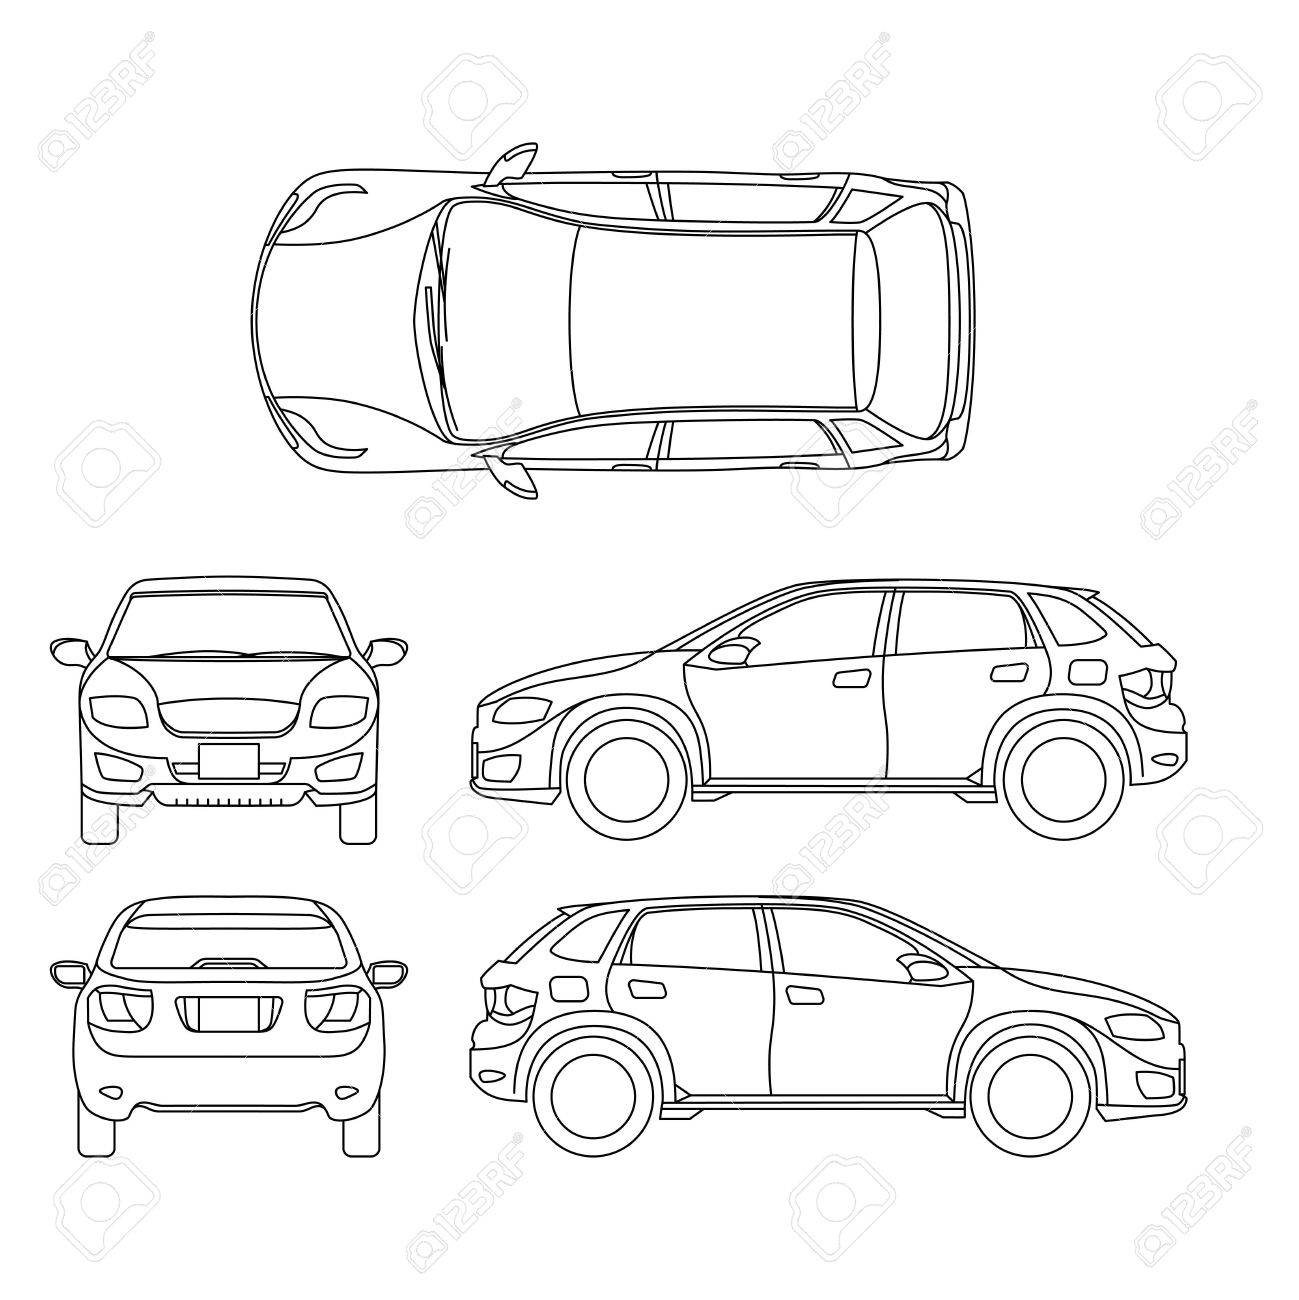 automobile drawing at getdrawings com